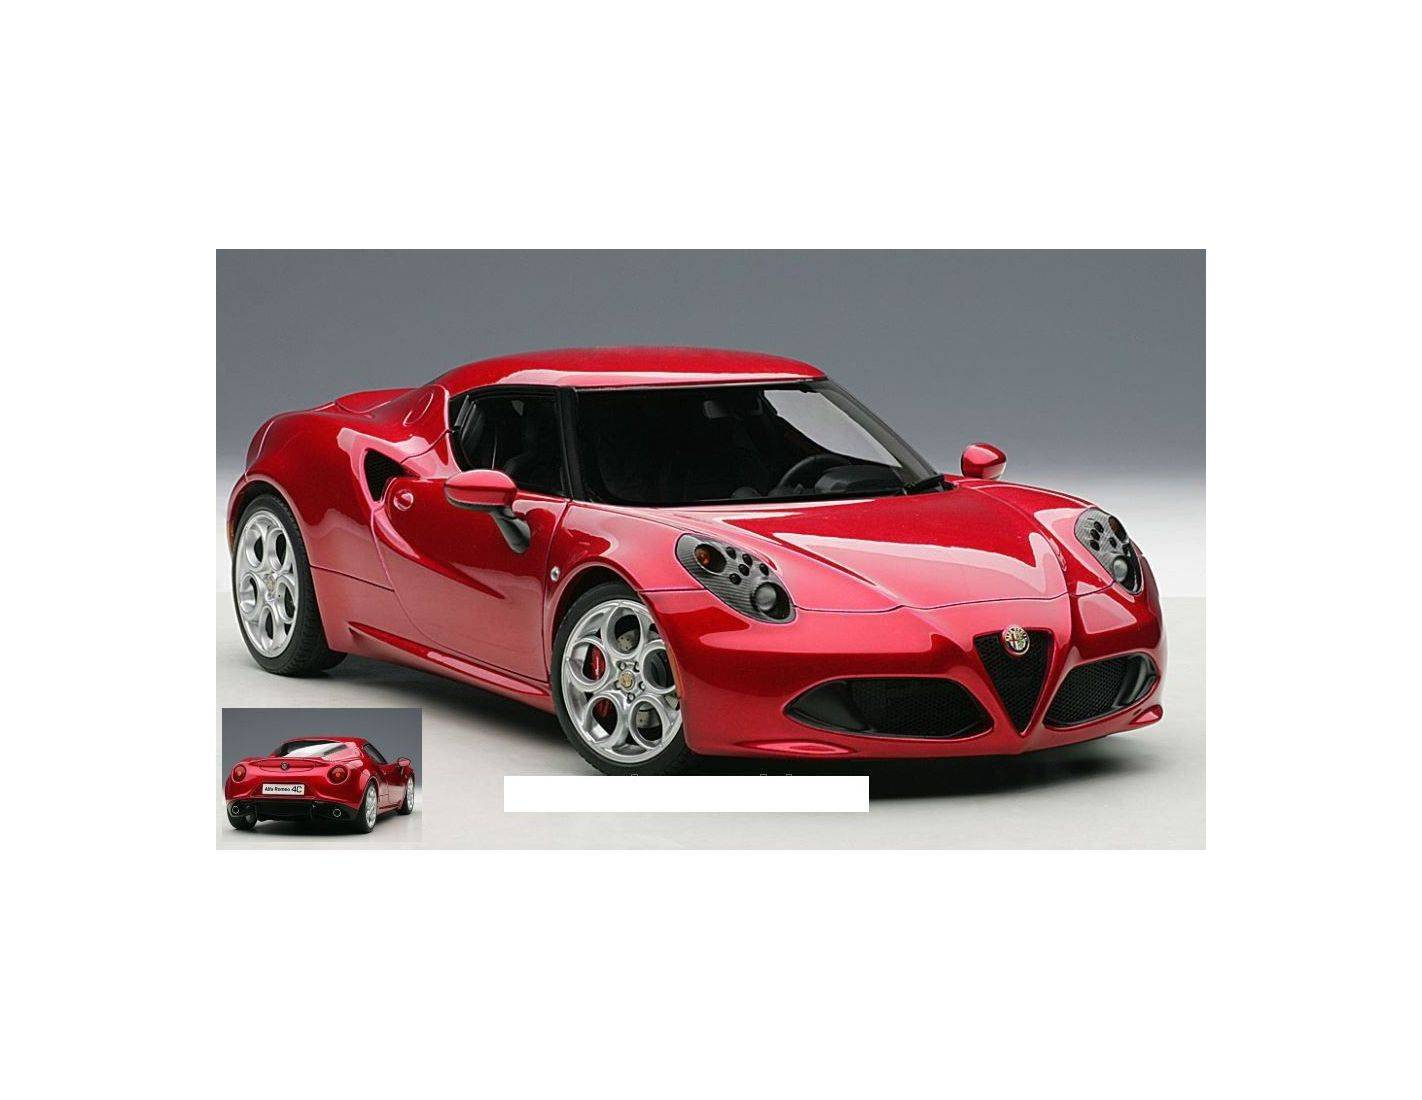 auto art gateway aa70186 alfa romeo 4c 2013 rosso competizione 1 18 modellino die cast models. Black Bedroom Furniture Sets. Home Design Ideas